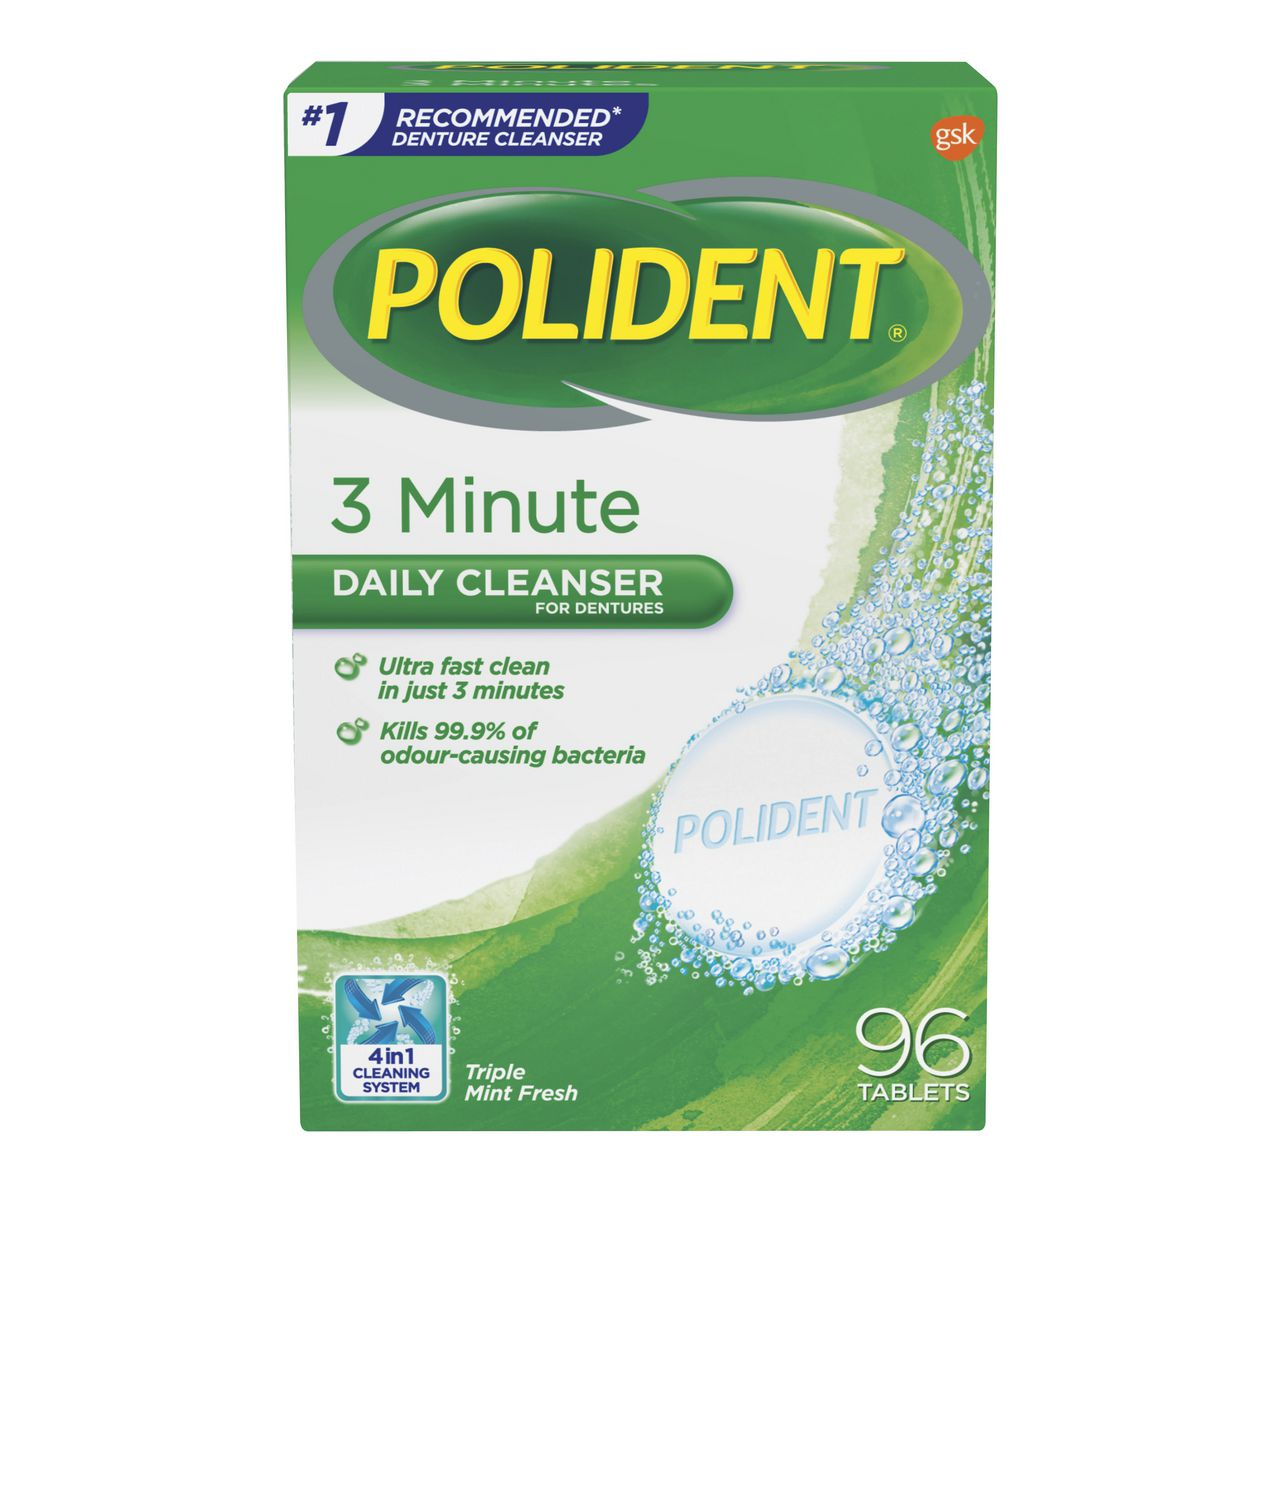 Polident 3 Minute Daily Cleanser for Dentures 96 Tablets